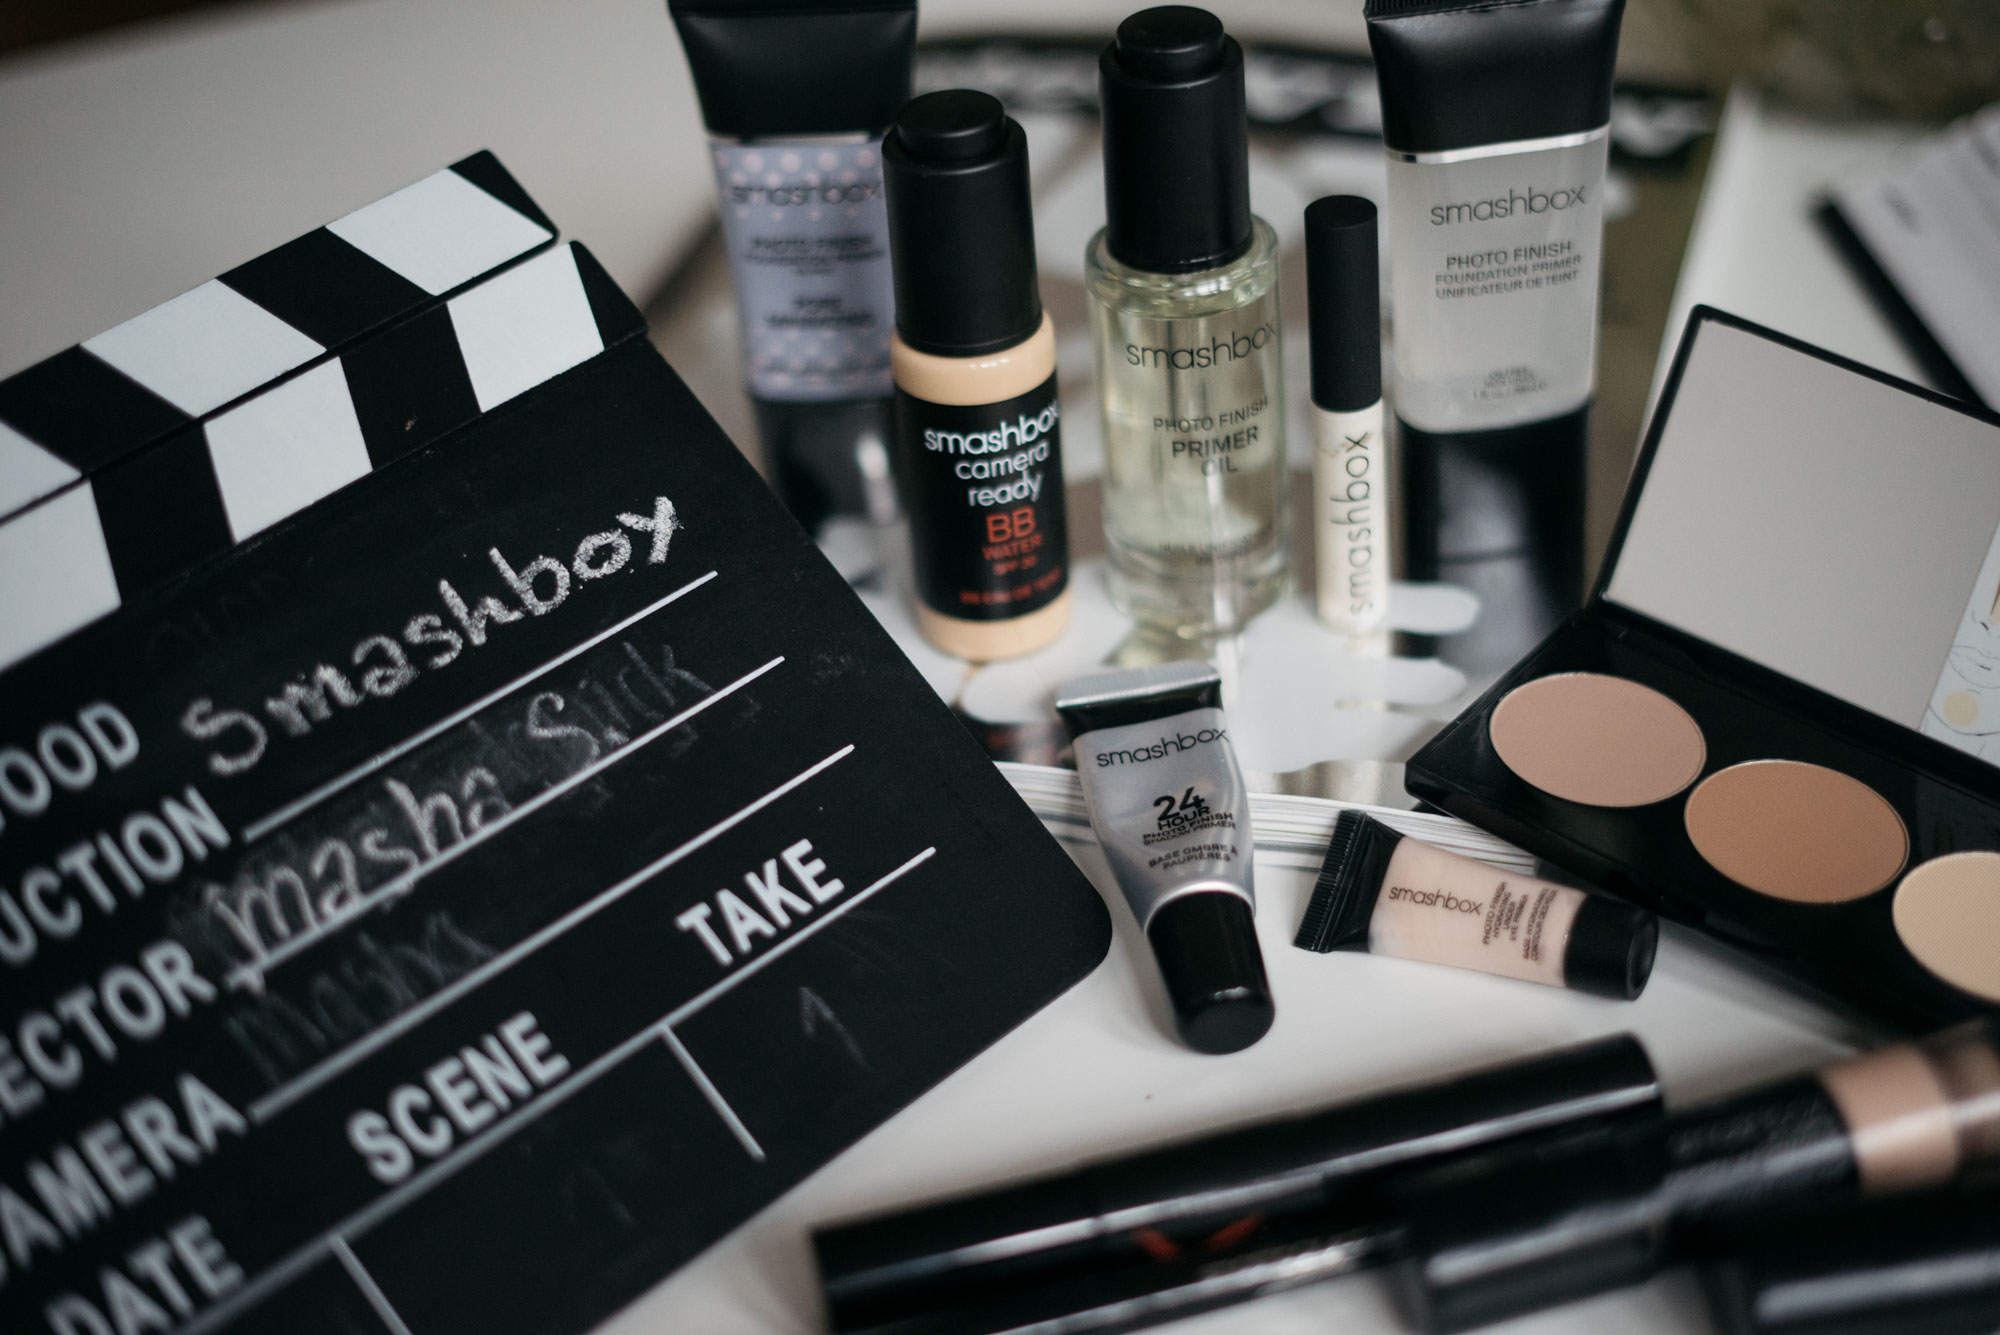 Masha Sedgwick, Blog Germany, Berlin, Blogger, Smashbox, Primer, Make Up, How to use Primer, grey lipstick